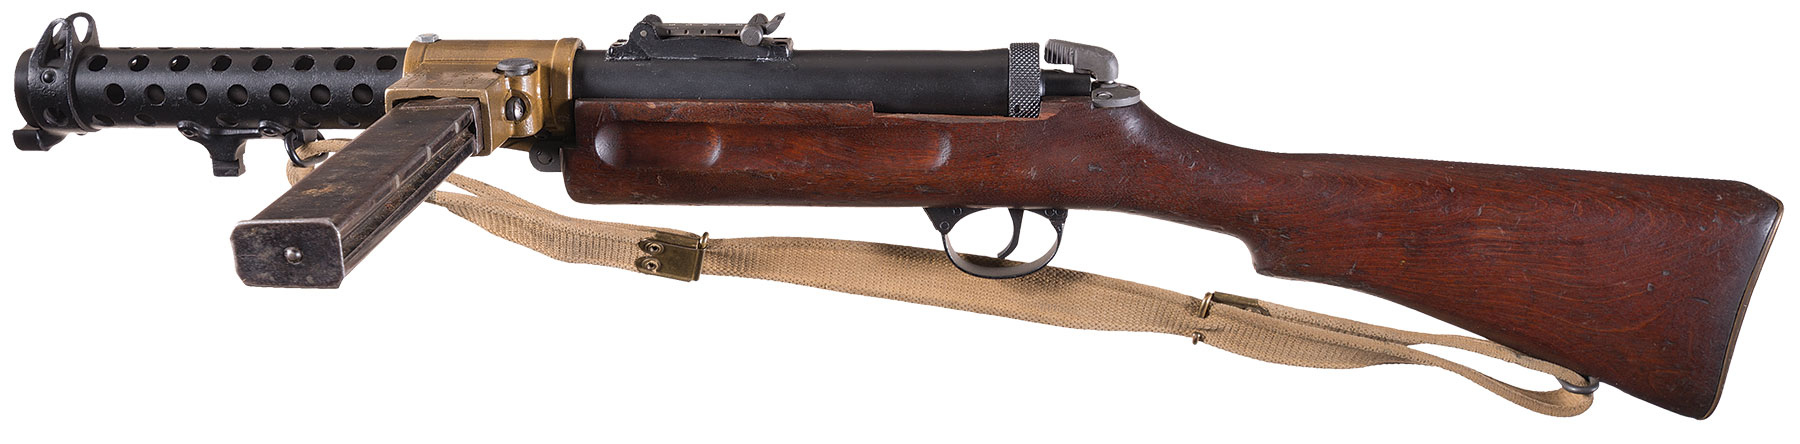 Wilson Arms Mark II SMG, Lanchester-Style, Fully Transferrable